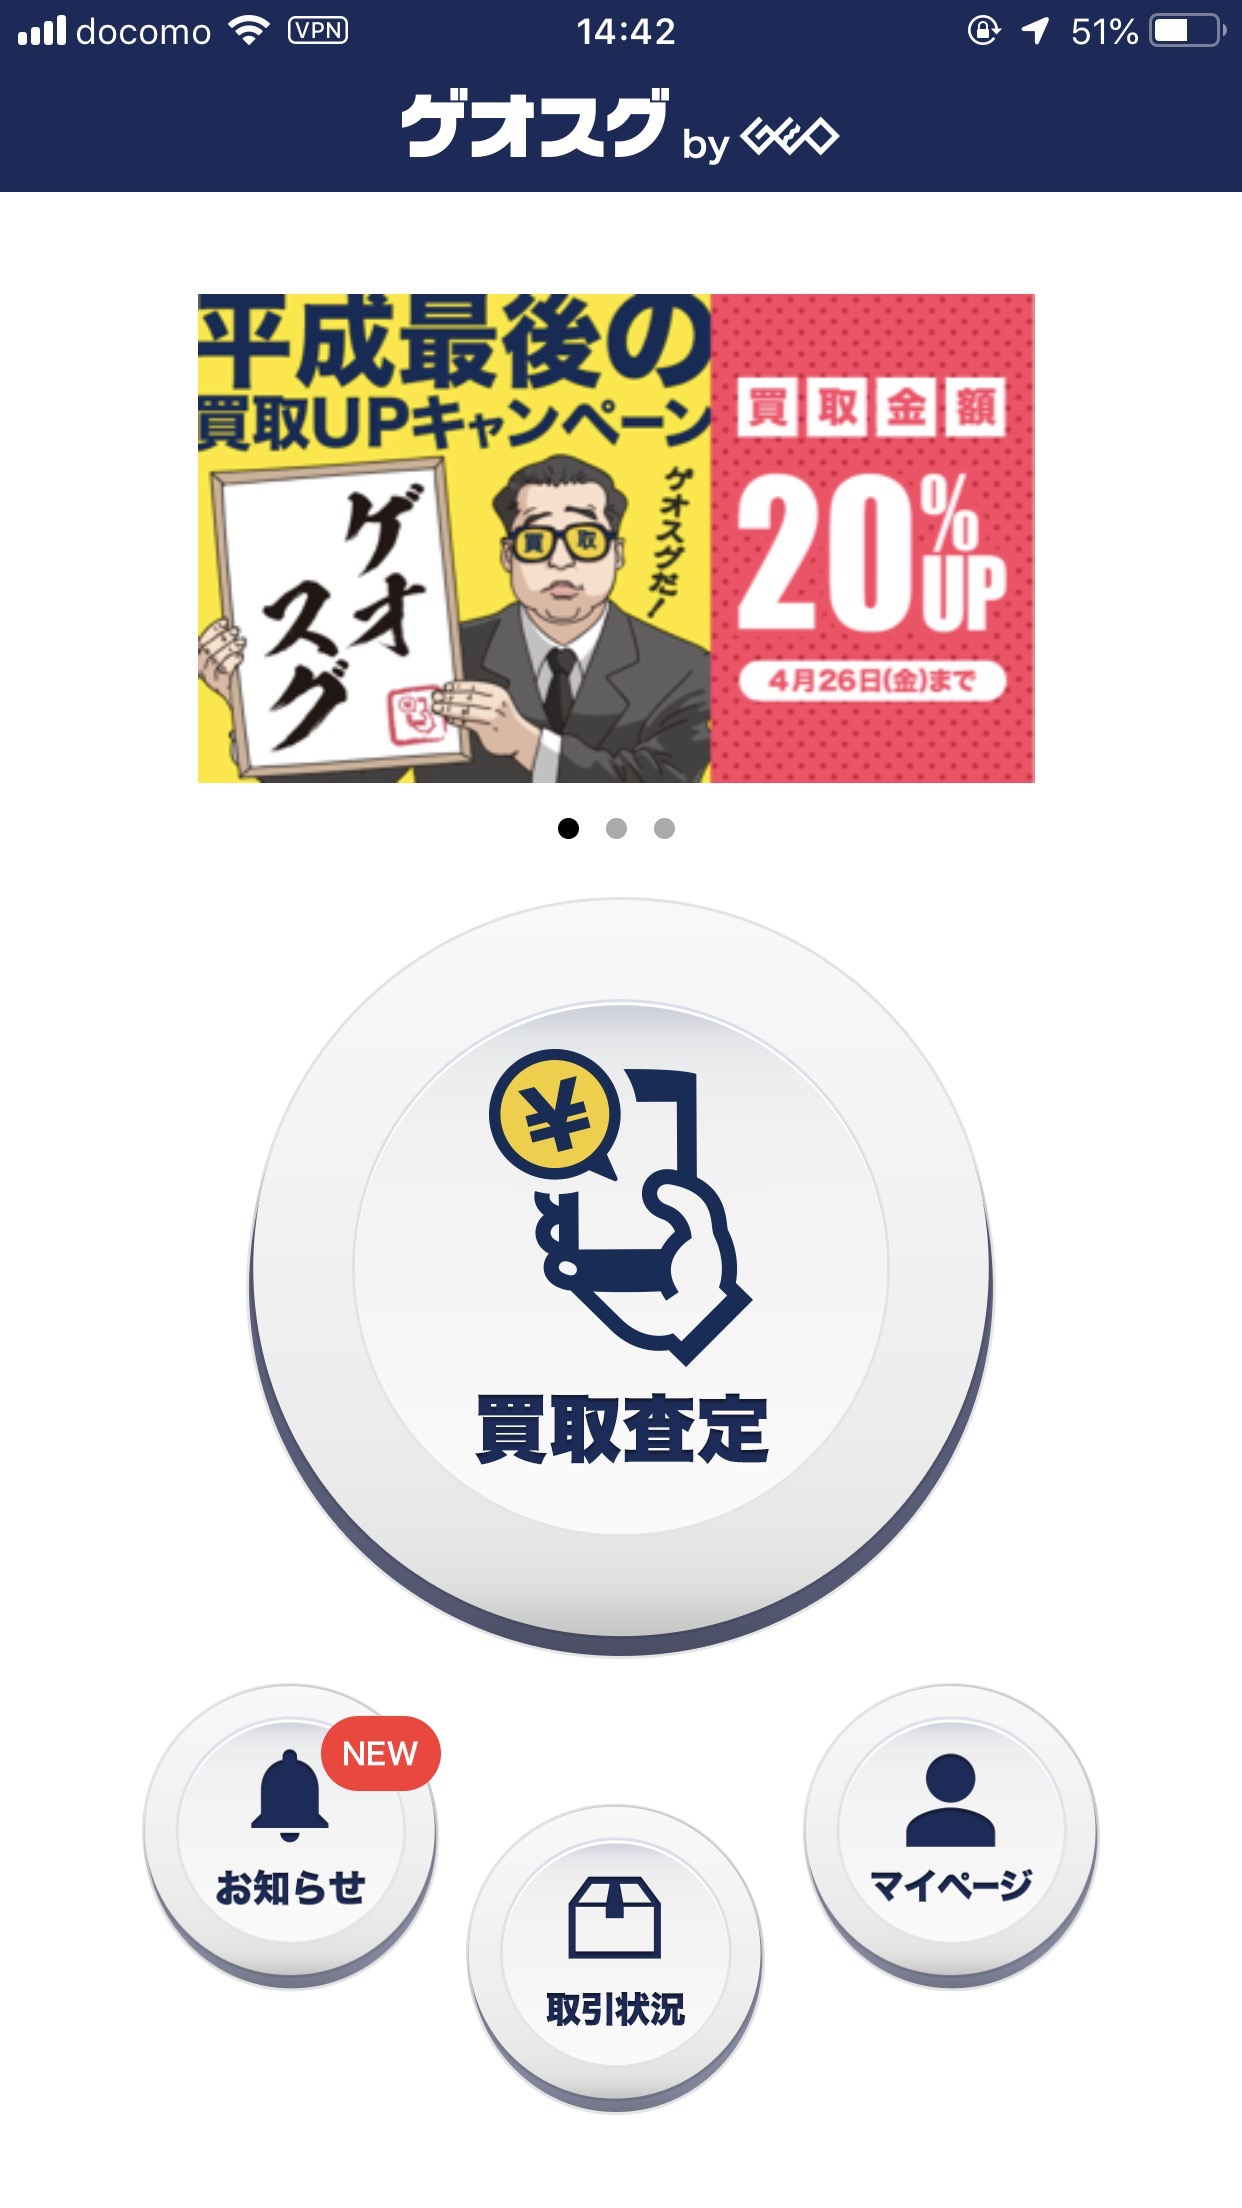 【iOS/Android】すぐ売れる!GEOのゲーム即金買取アプリ「ゲオスグ」 4